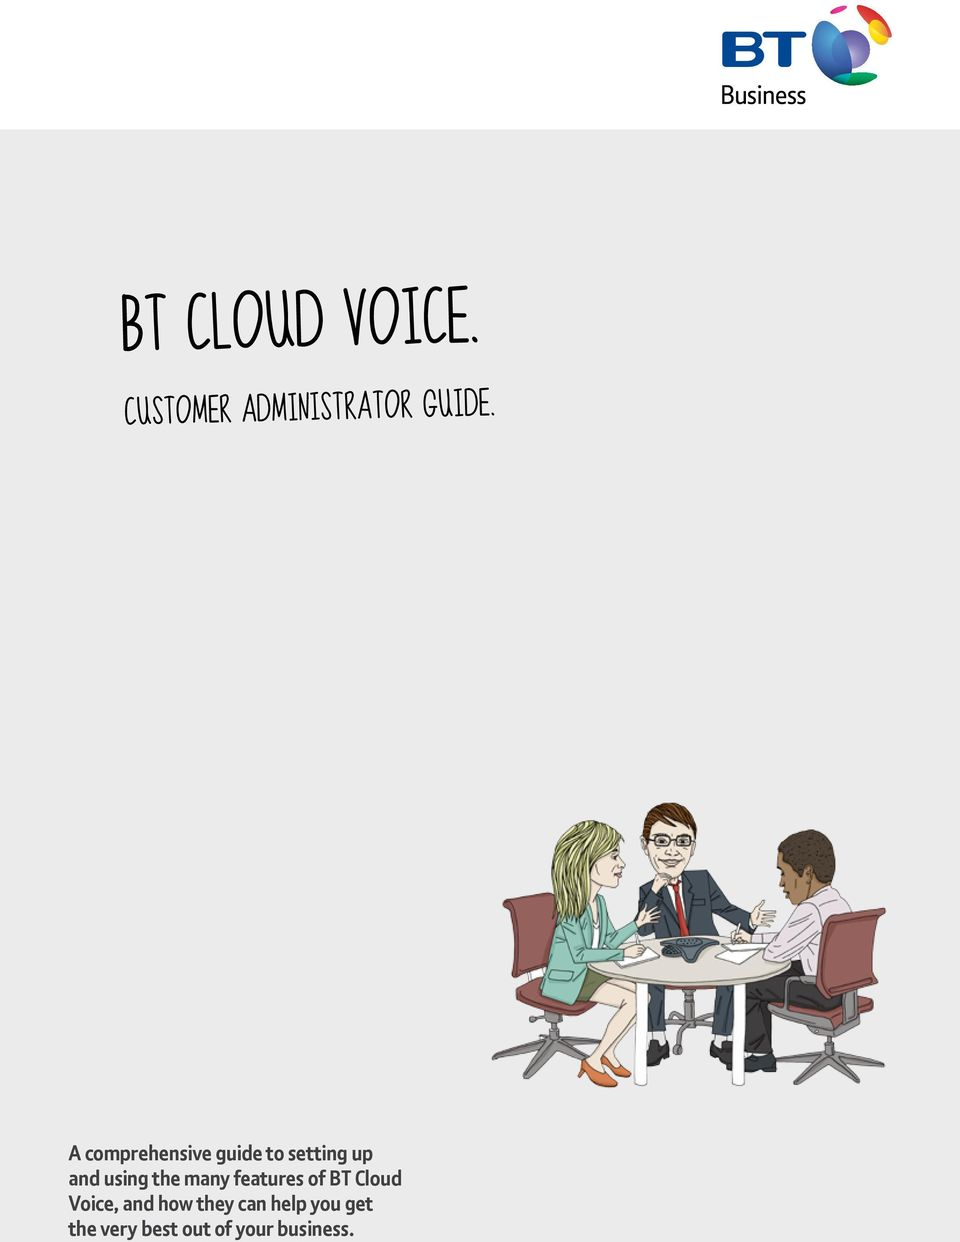 the many features of BT Cloud Voice, and how